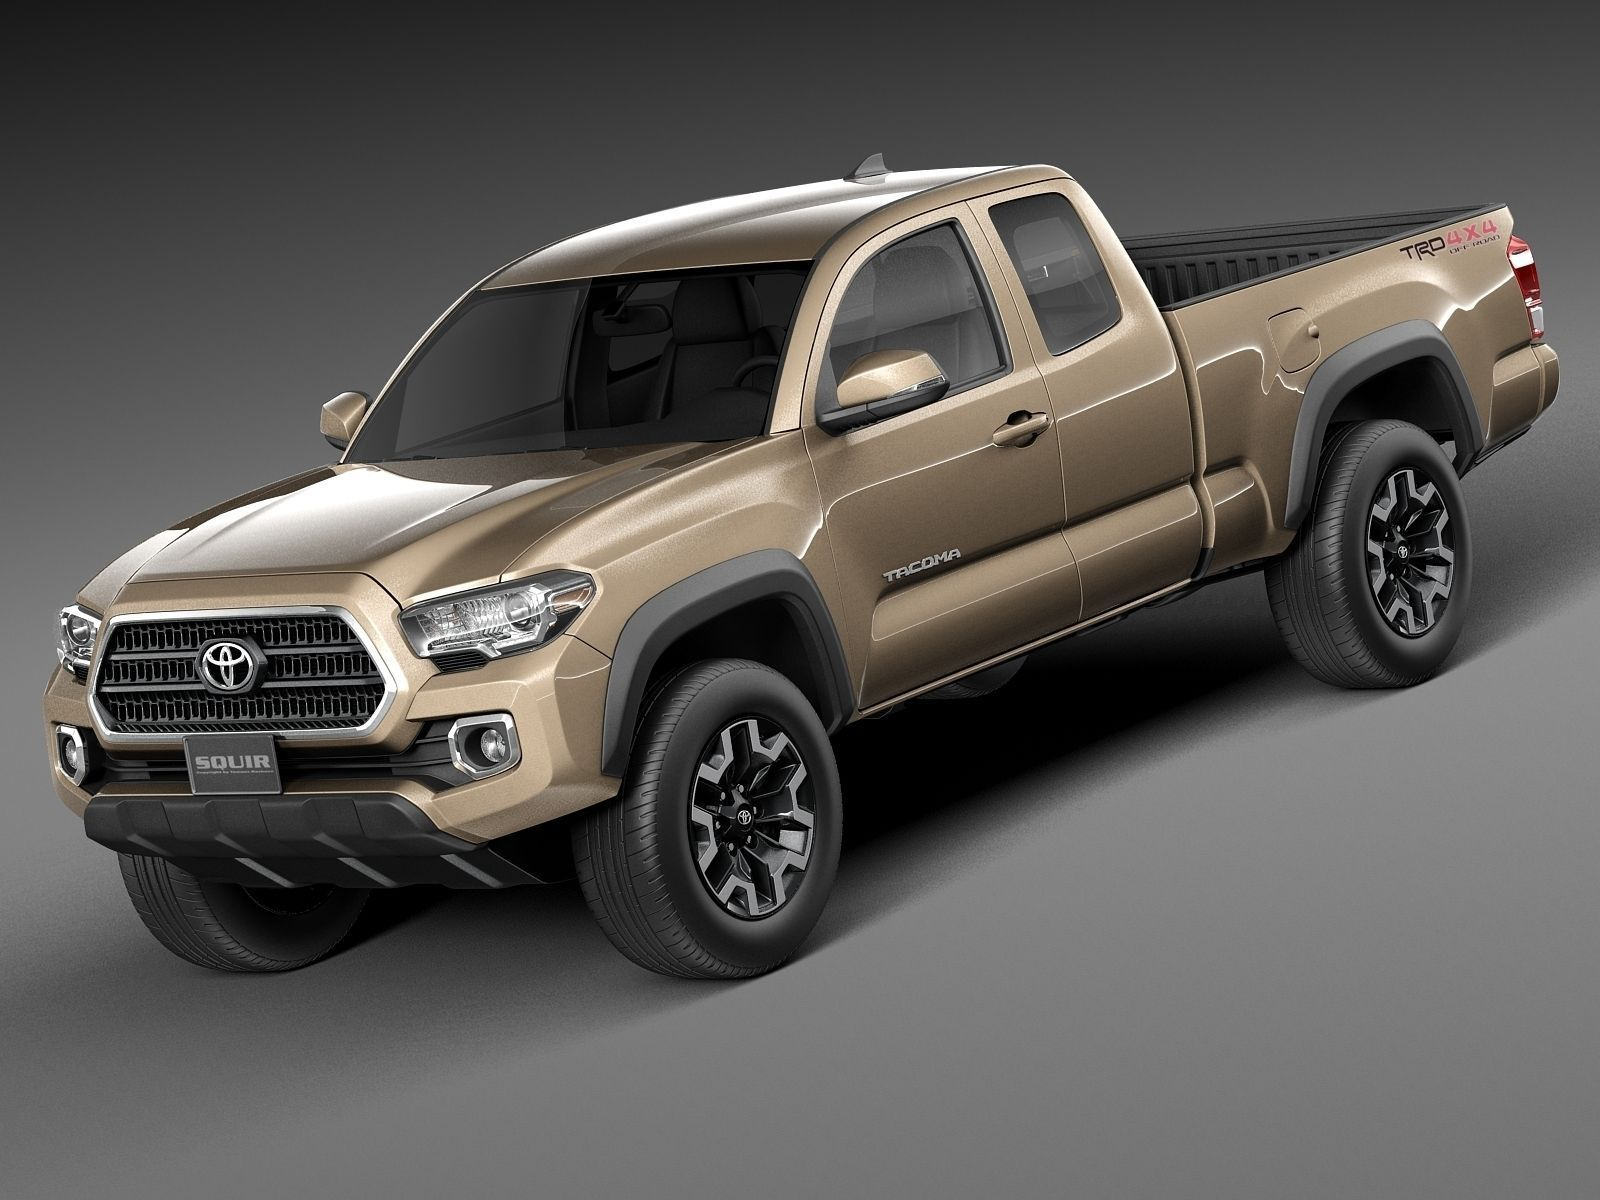 toyota tacoma trd off road 2016 3d model max obj 3ds fbx c4d lwo lw lws. Black Bedroom Furniture Sets. Home Design Ideas